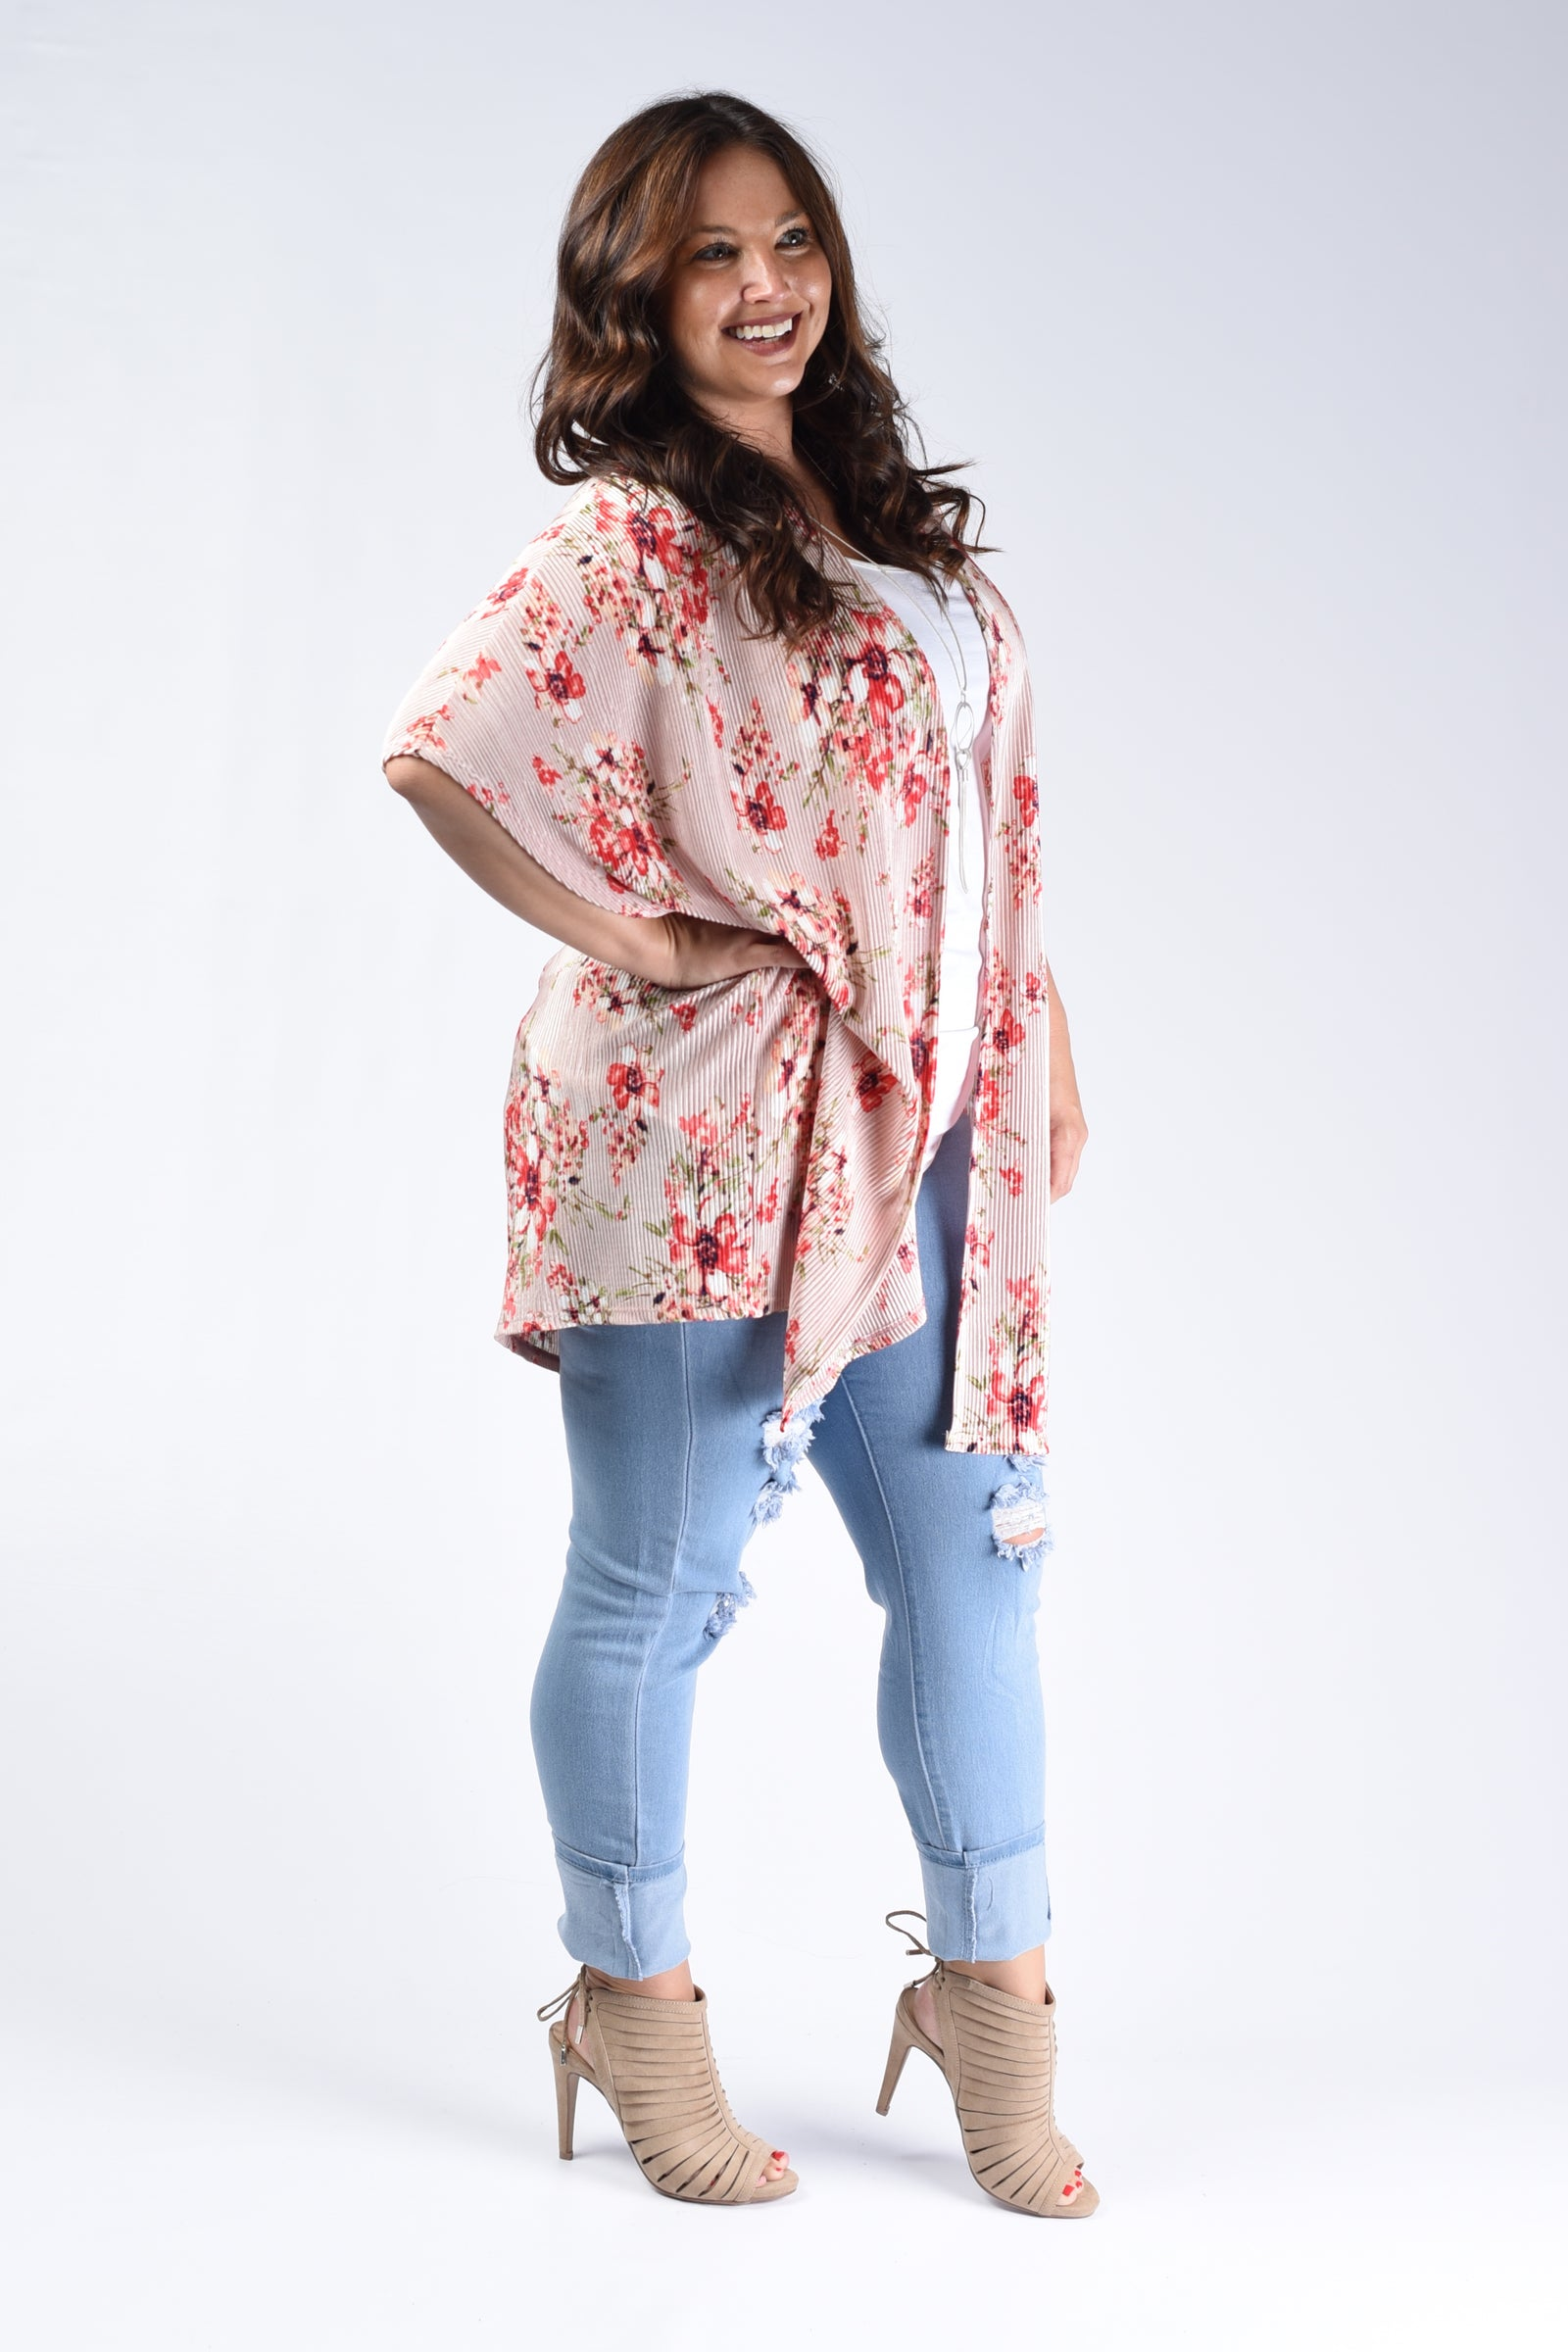 Rosette Pink Floral Pleated Cardigan